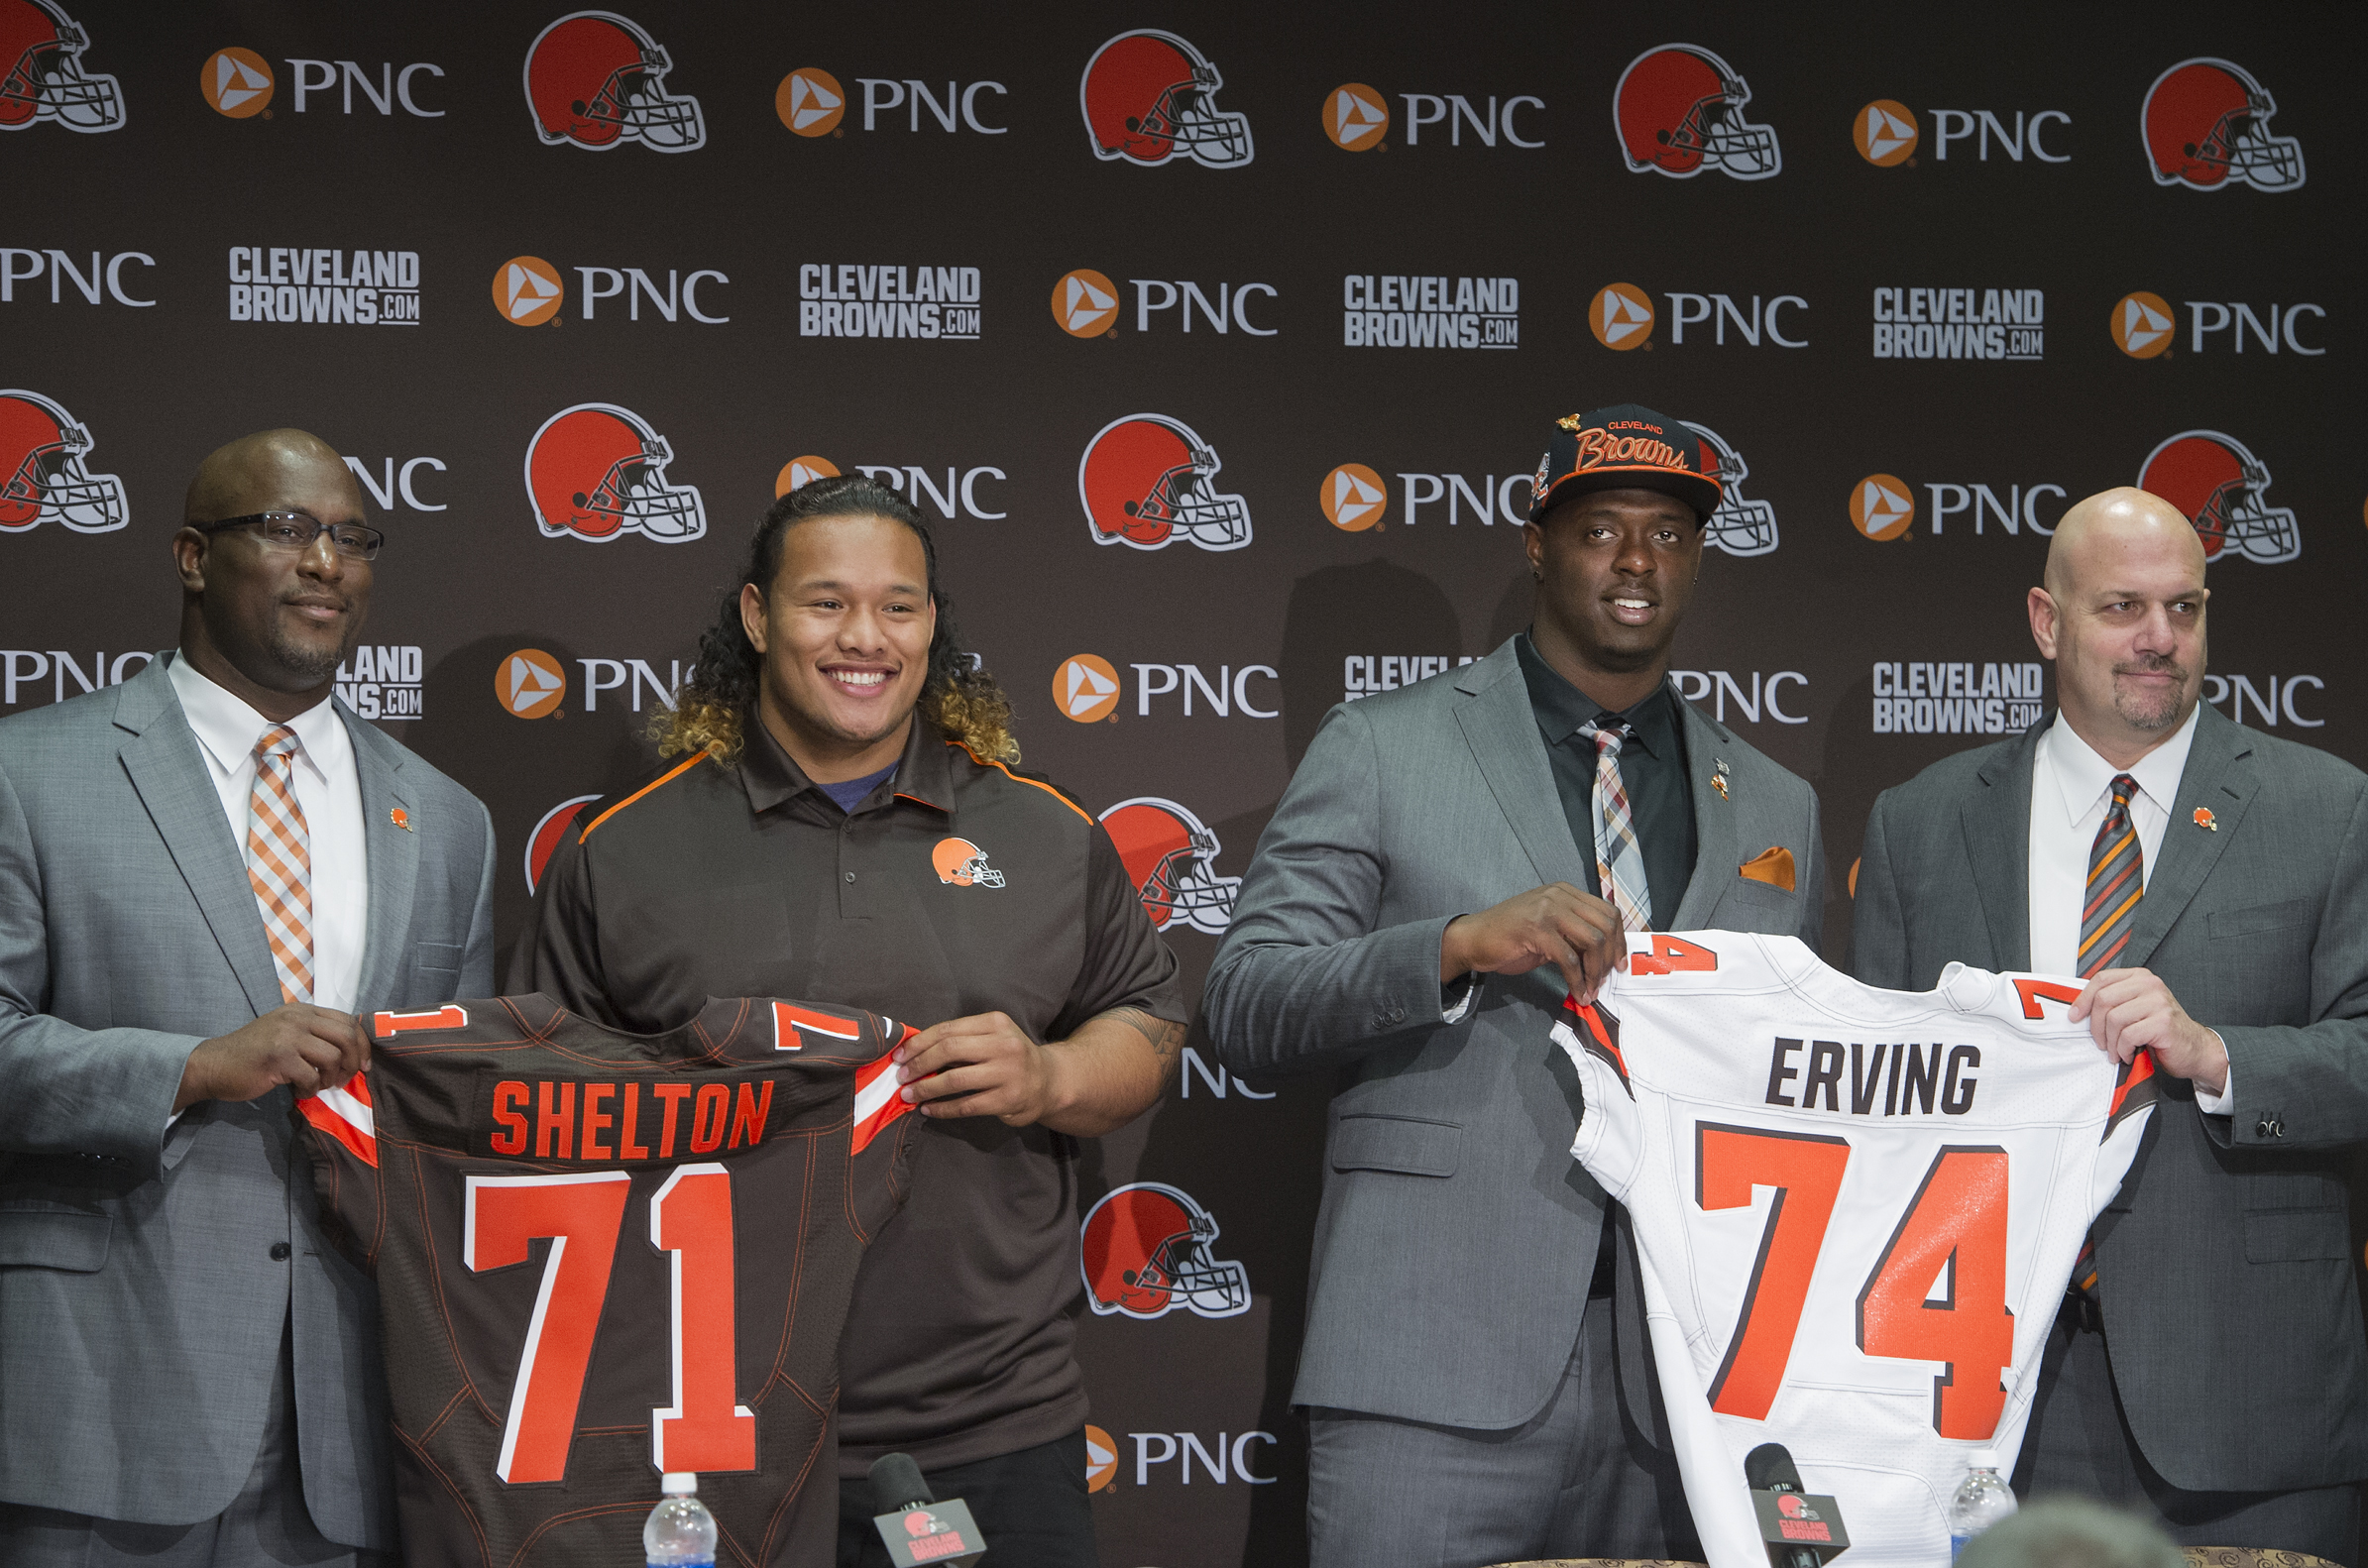 Cleveland Browns general manager Ray Farmer, left, stands with Browns first-round draftees Danny Shelton, second from left, and Cameron Erving, second from right, and Browns head coach Mike Pettine, right, at a news conference in Berea, Ohio, Friday, May